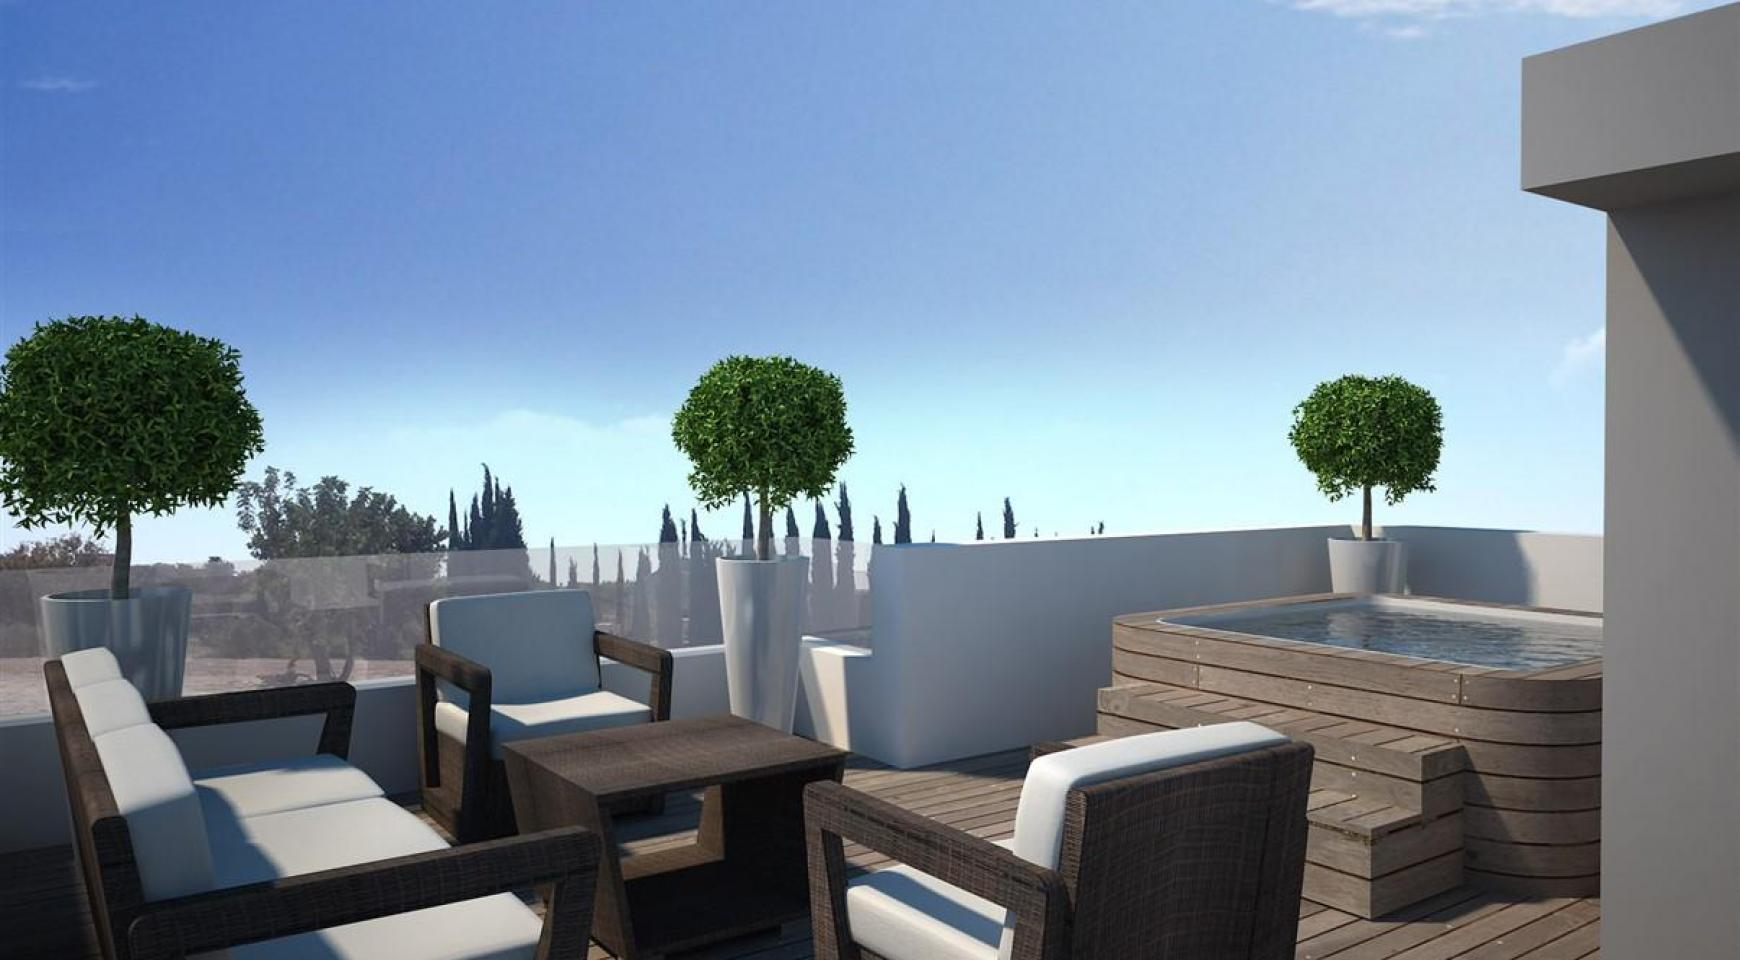 3 Bedroom Villa in a New Project - 40